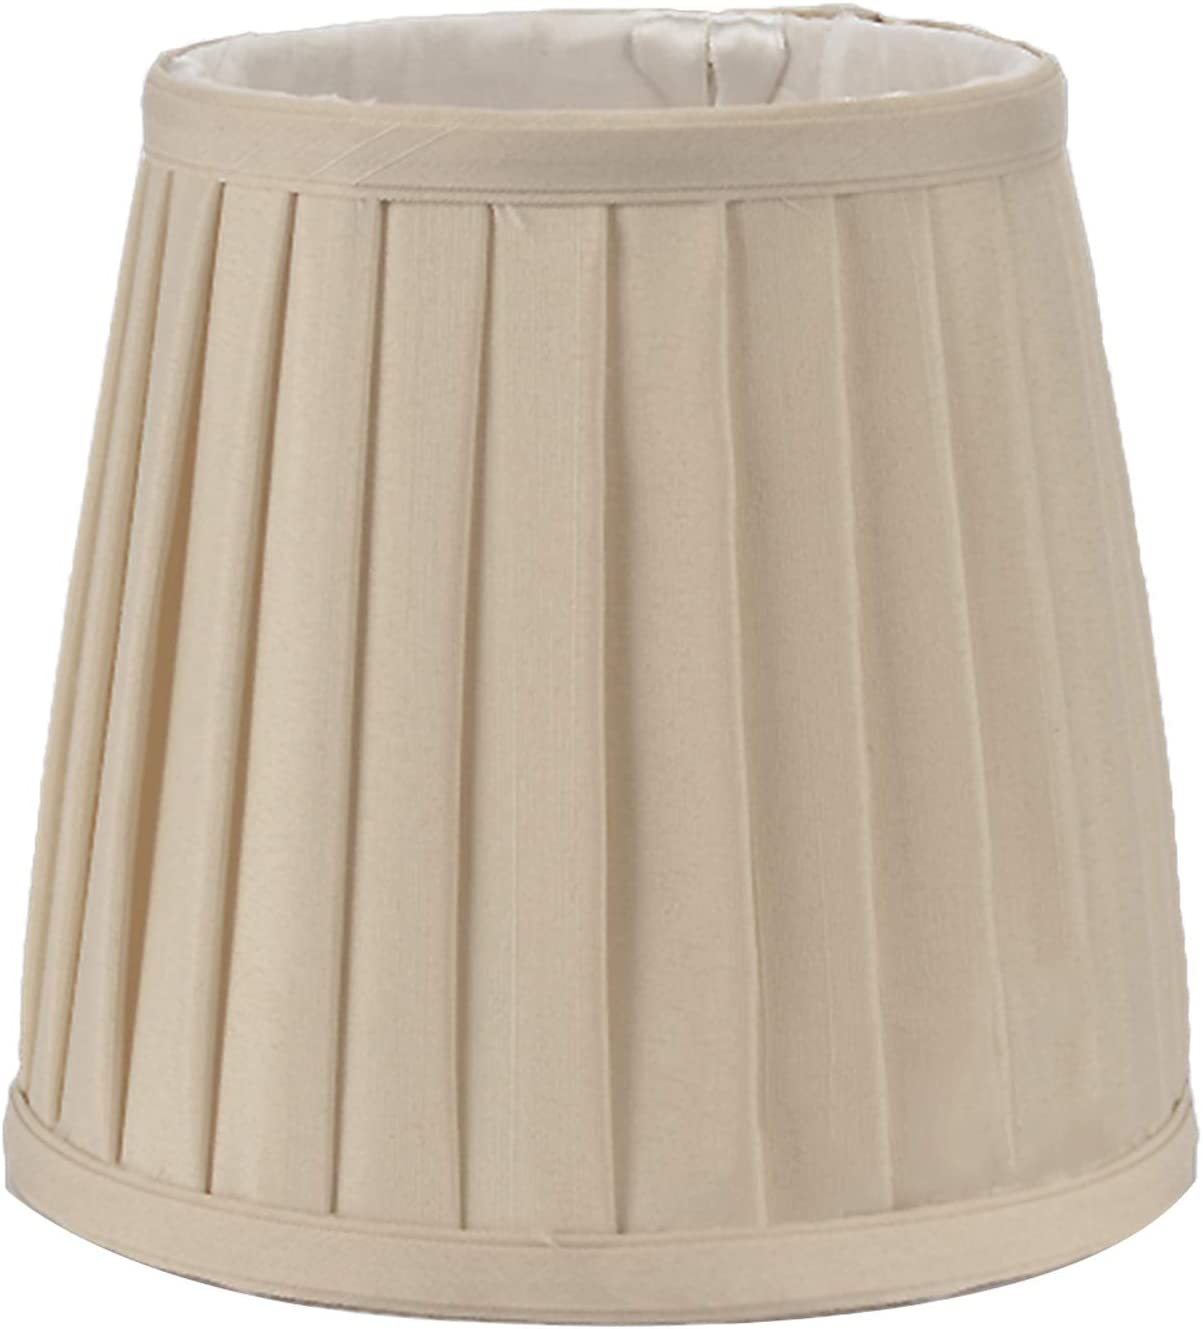 HYJHDD Traditional Classic Free shipping Pleated Suitable Max 54% OFF Lampshade for Candl